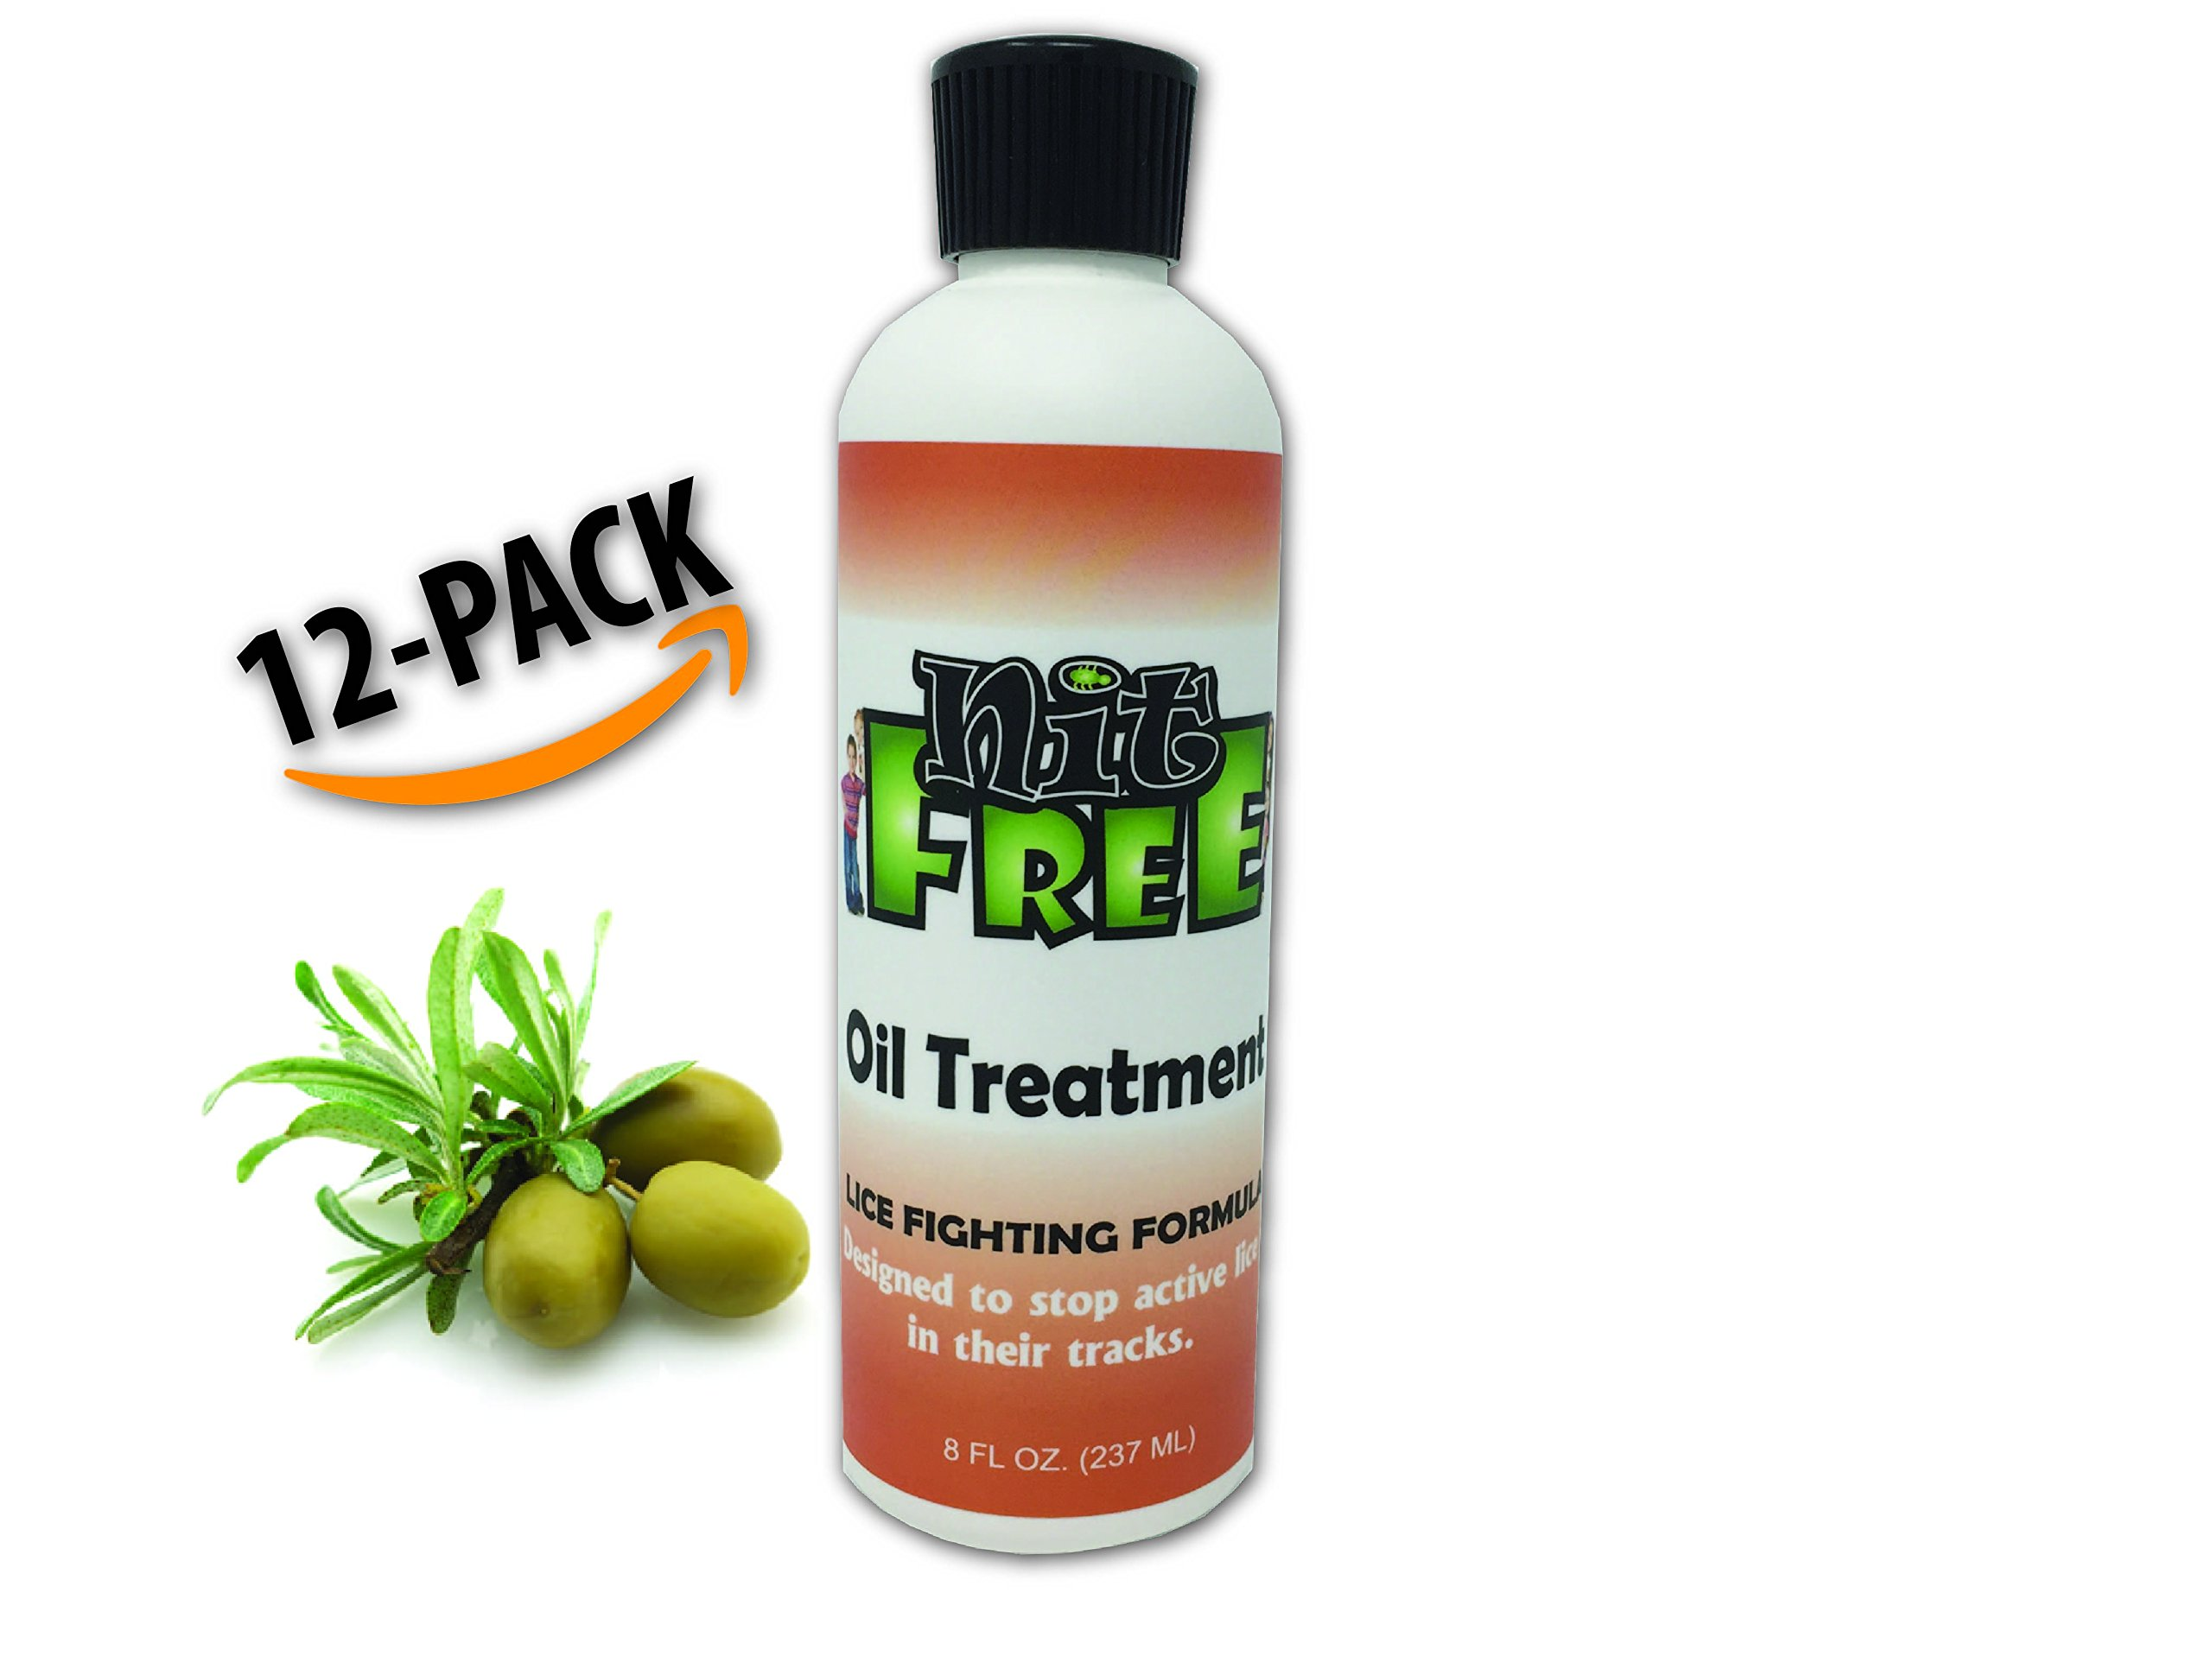 Nit Free Lice Treatment Shampoo for Head Lice. 8oz 12 Pack Olive Oil Based Headlice Treatment. For Removal of Super Lice. From the Maker of Nit Free Terminator Lice Comb and Lice Prevention Products